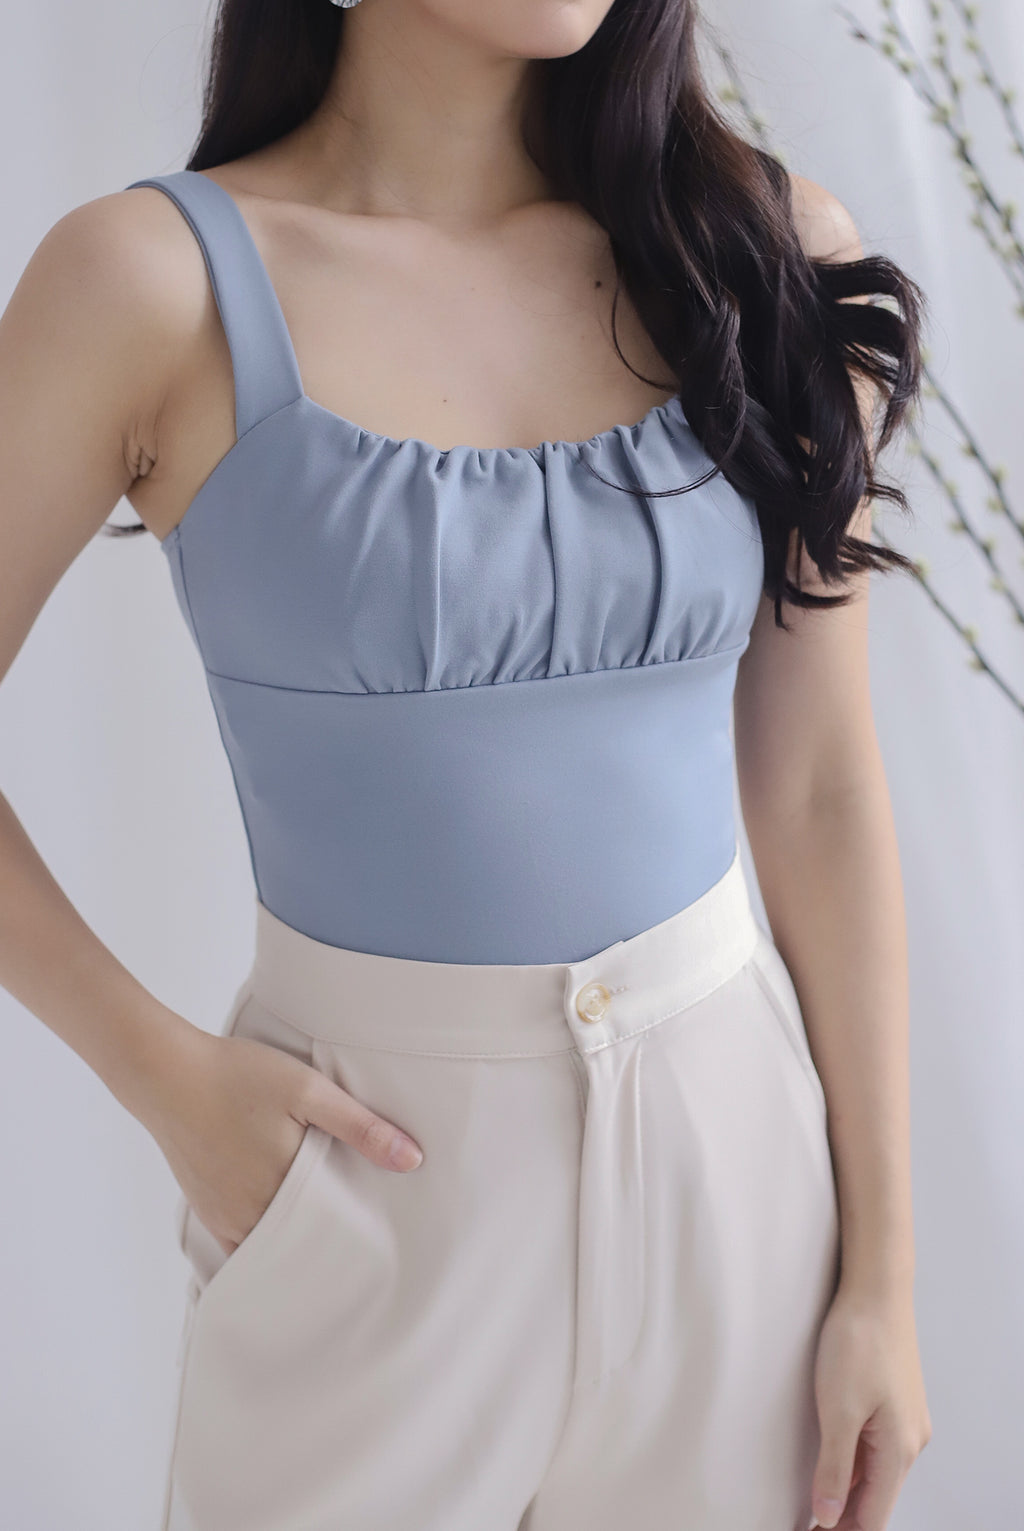 Melodia Bustier Top In Skyblue